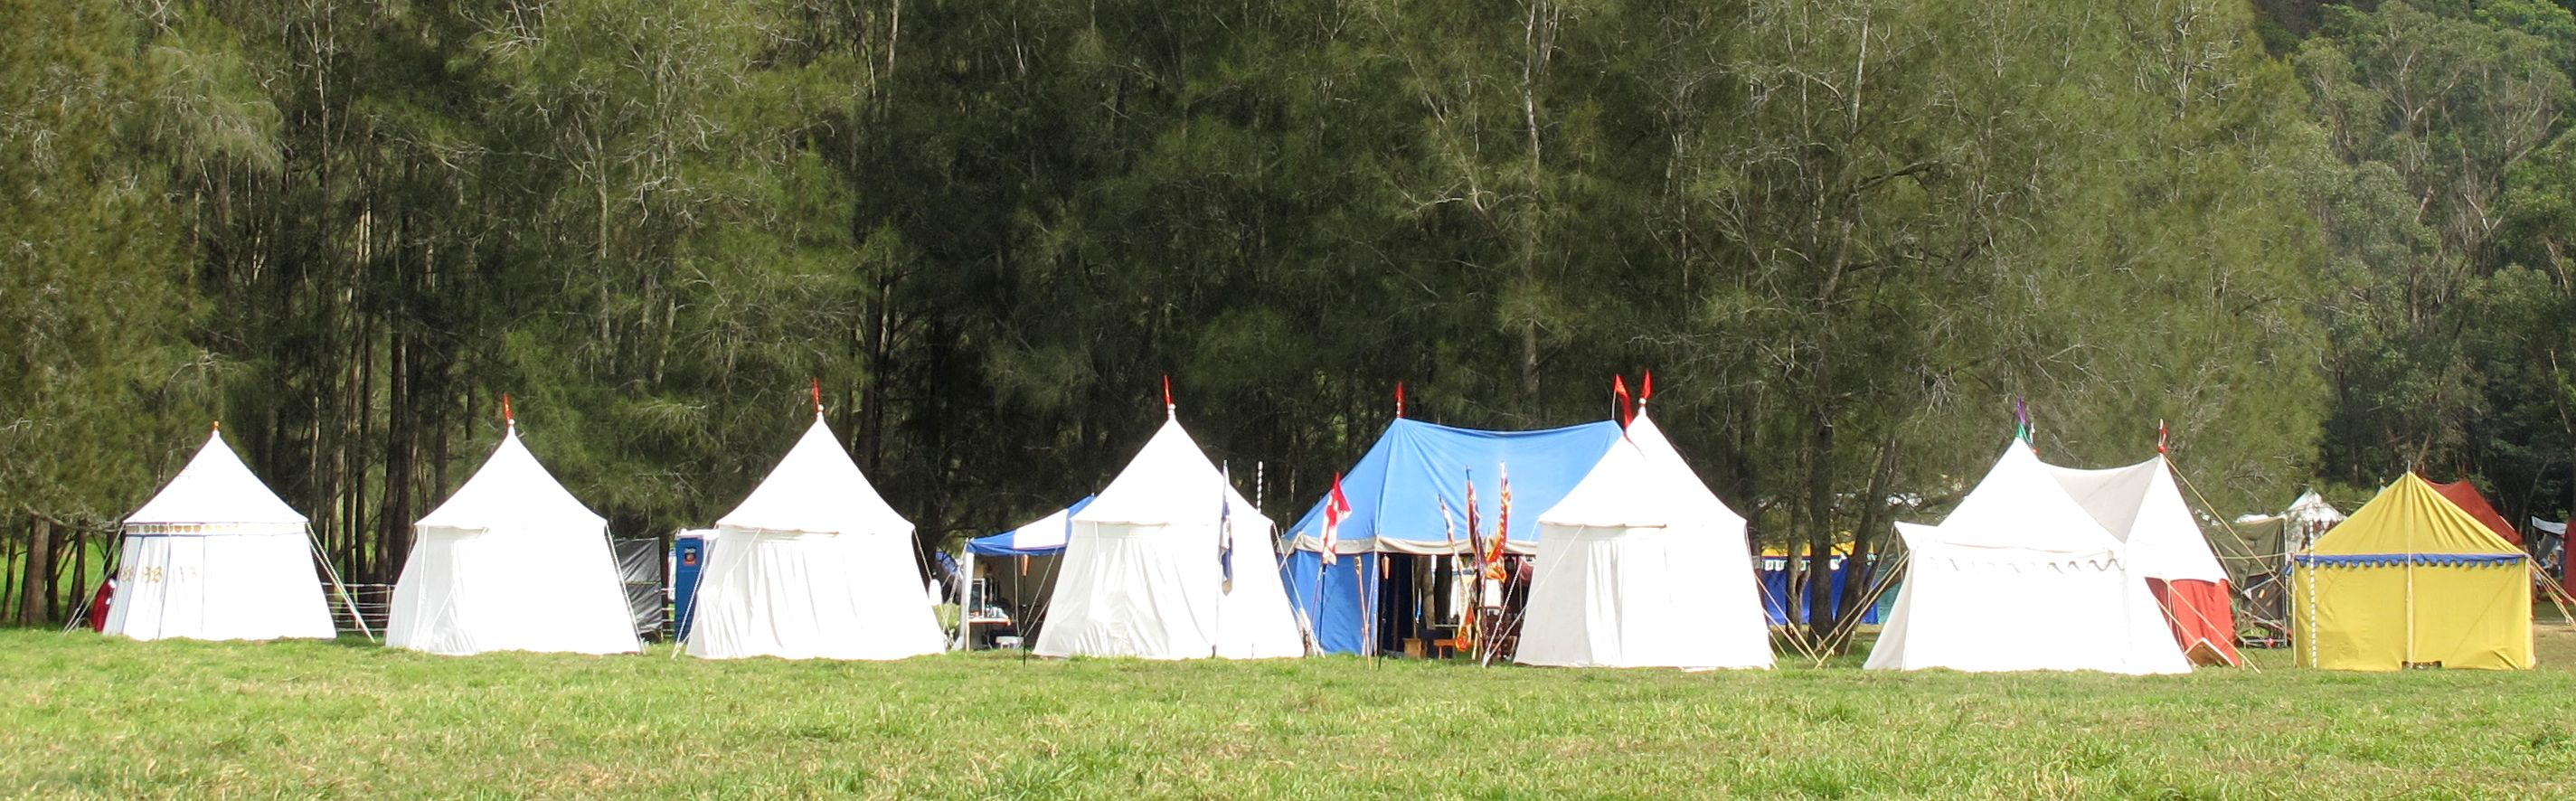 medieval camping camp site